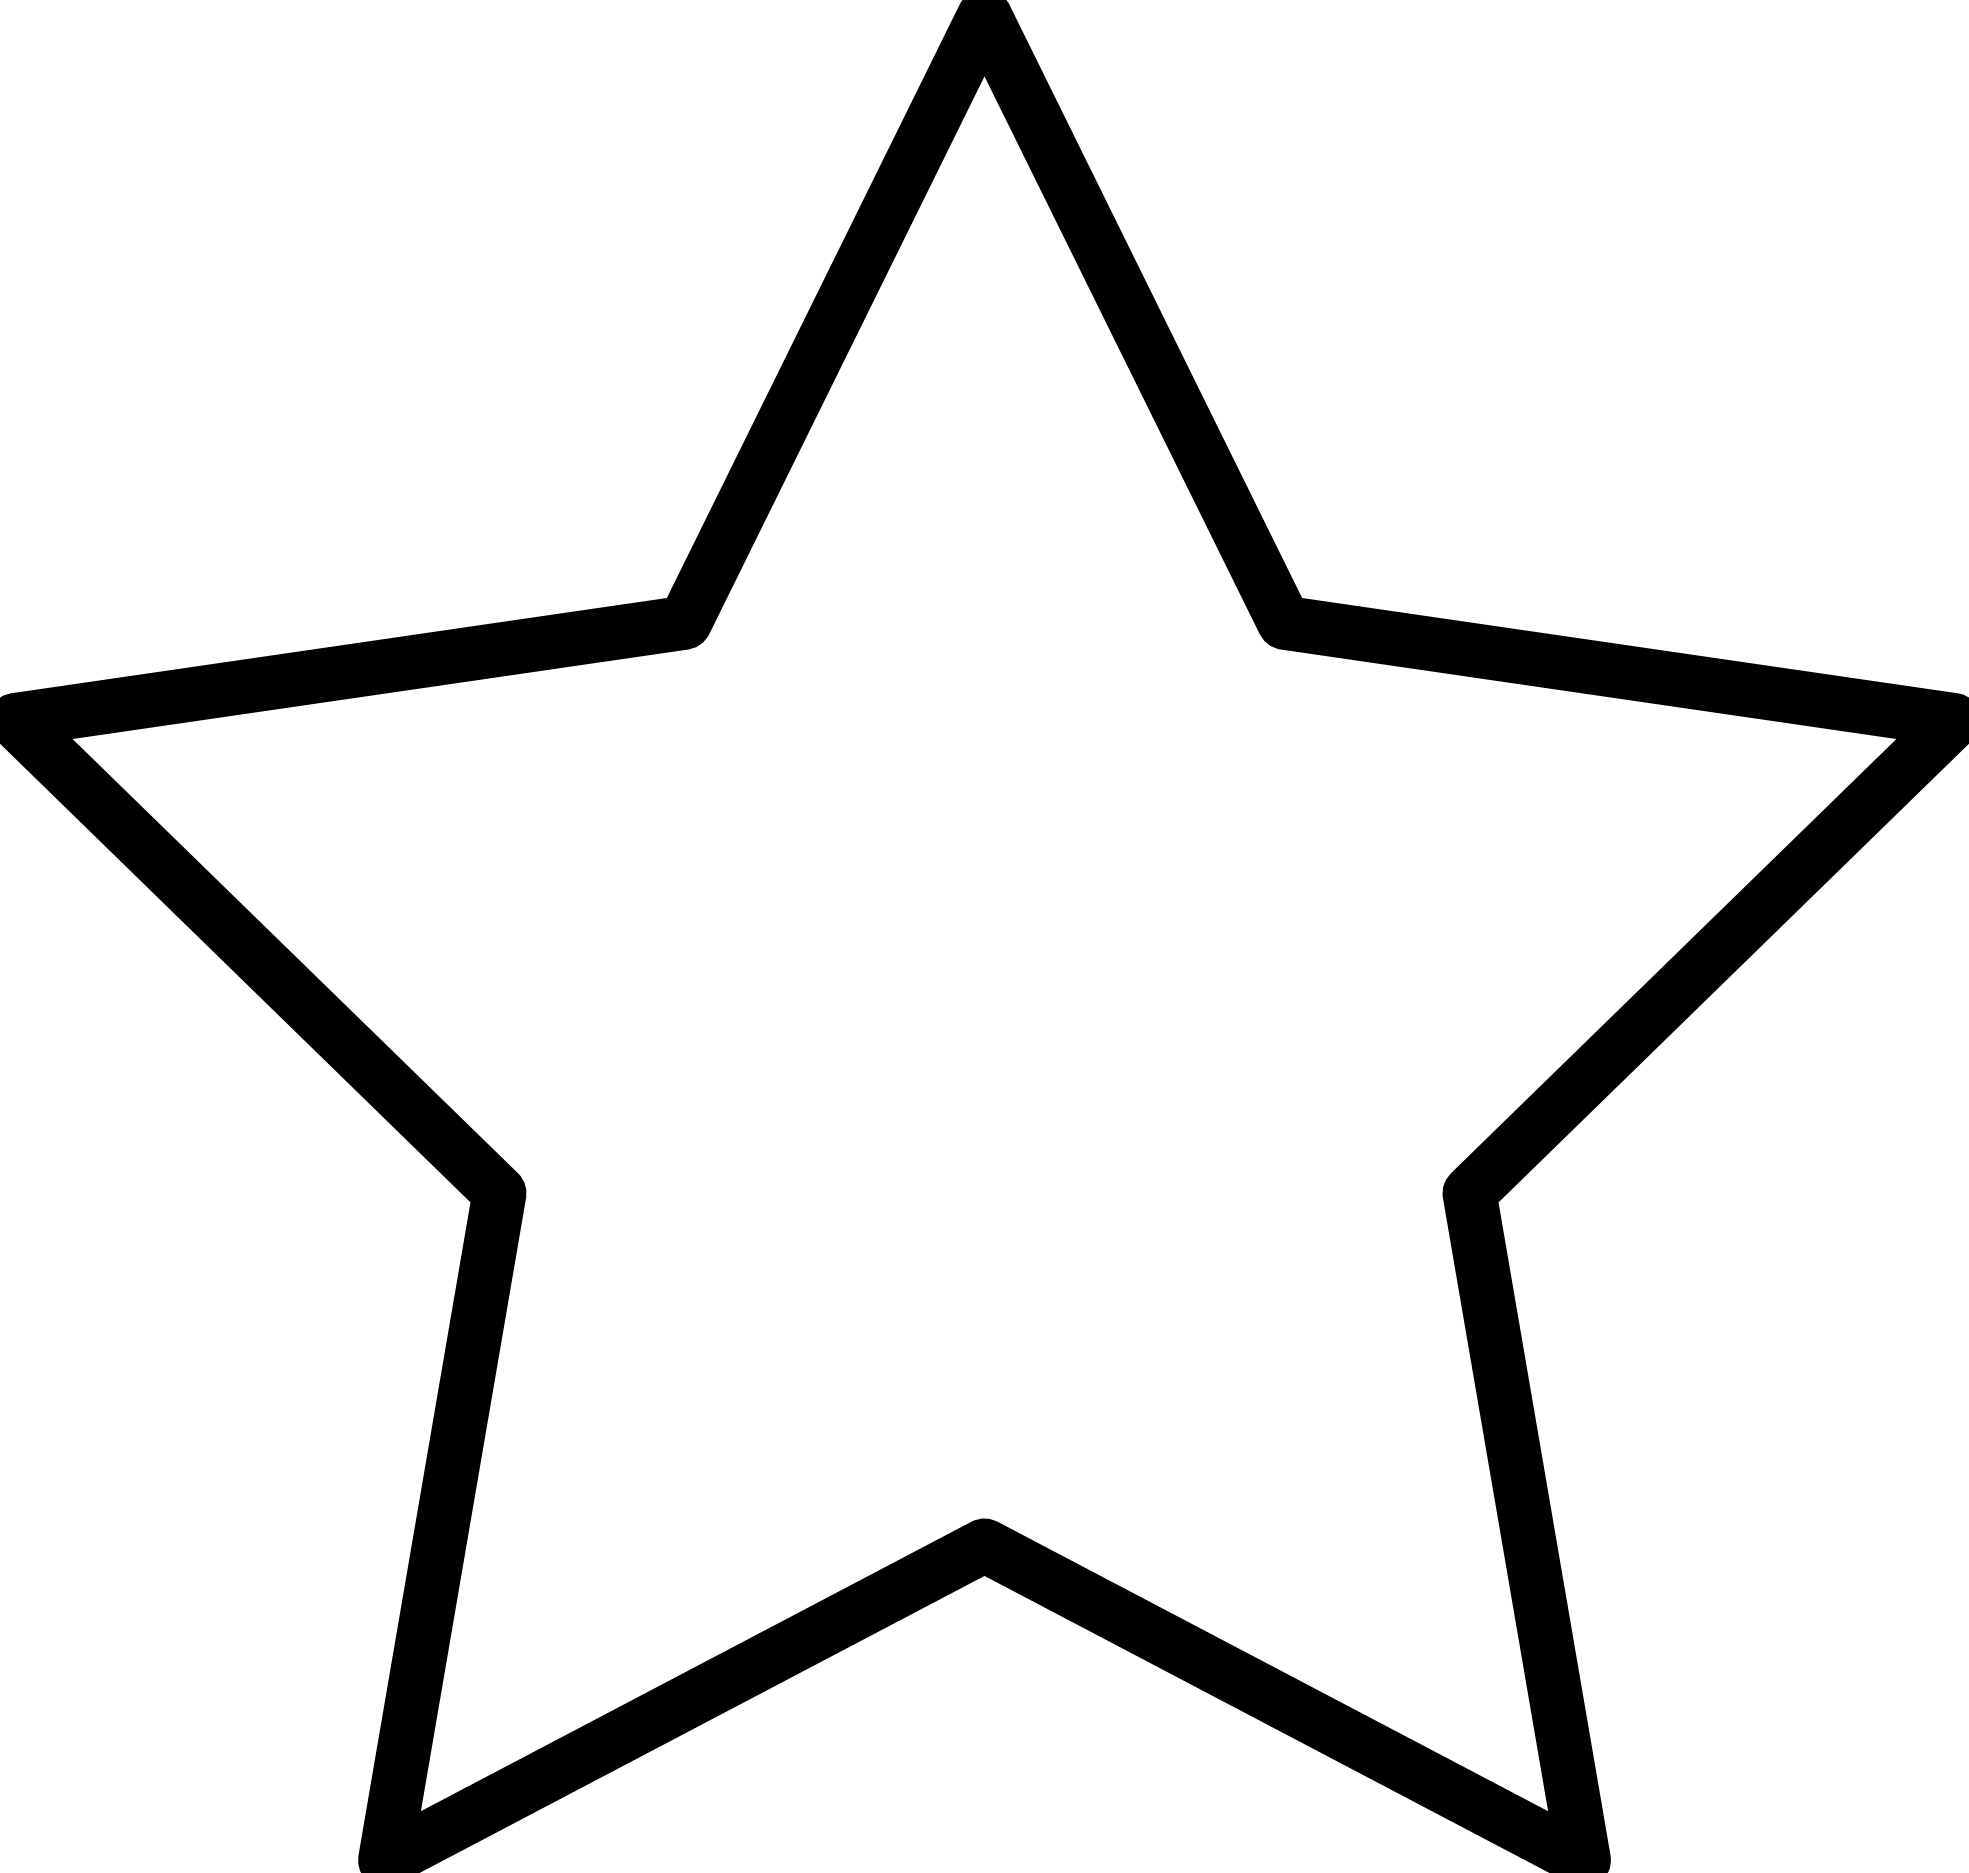 Star background clipart black and white royalty free star-clipart-black-and-white-4cbKBedei.png (1969×1873) | kids yarn ... royalty free